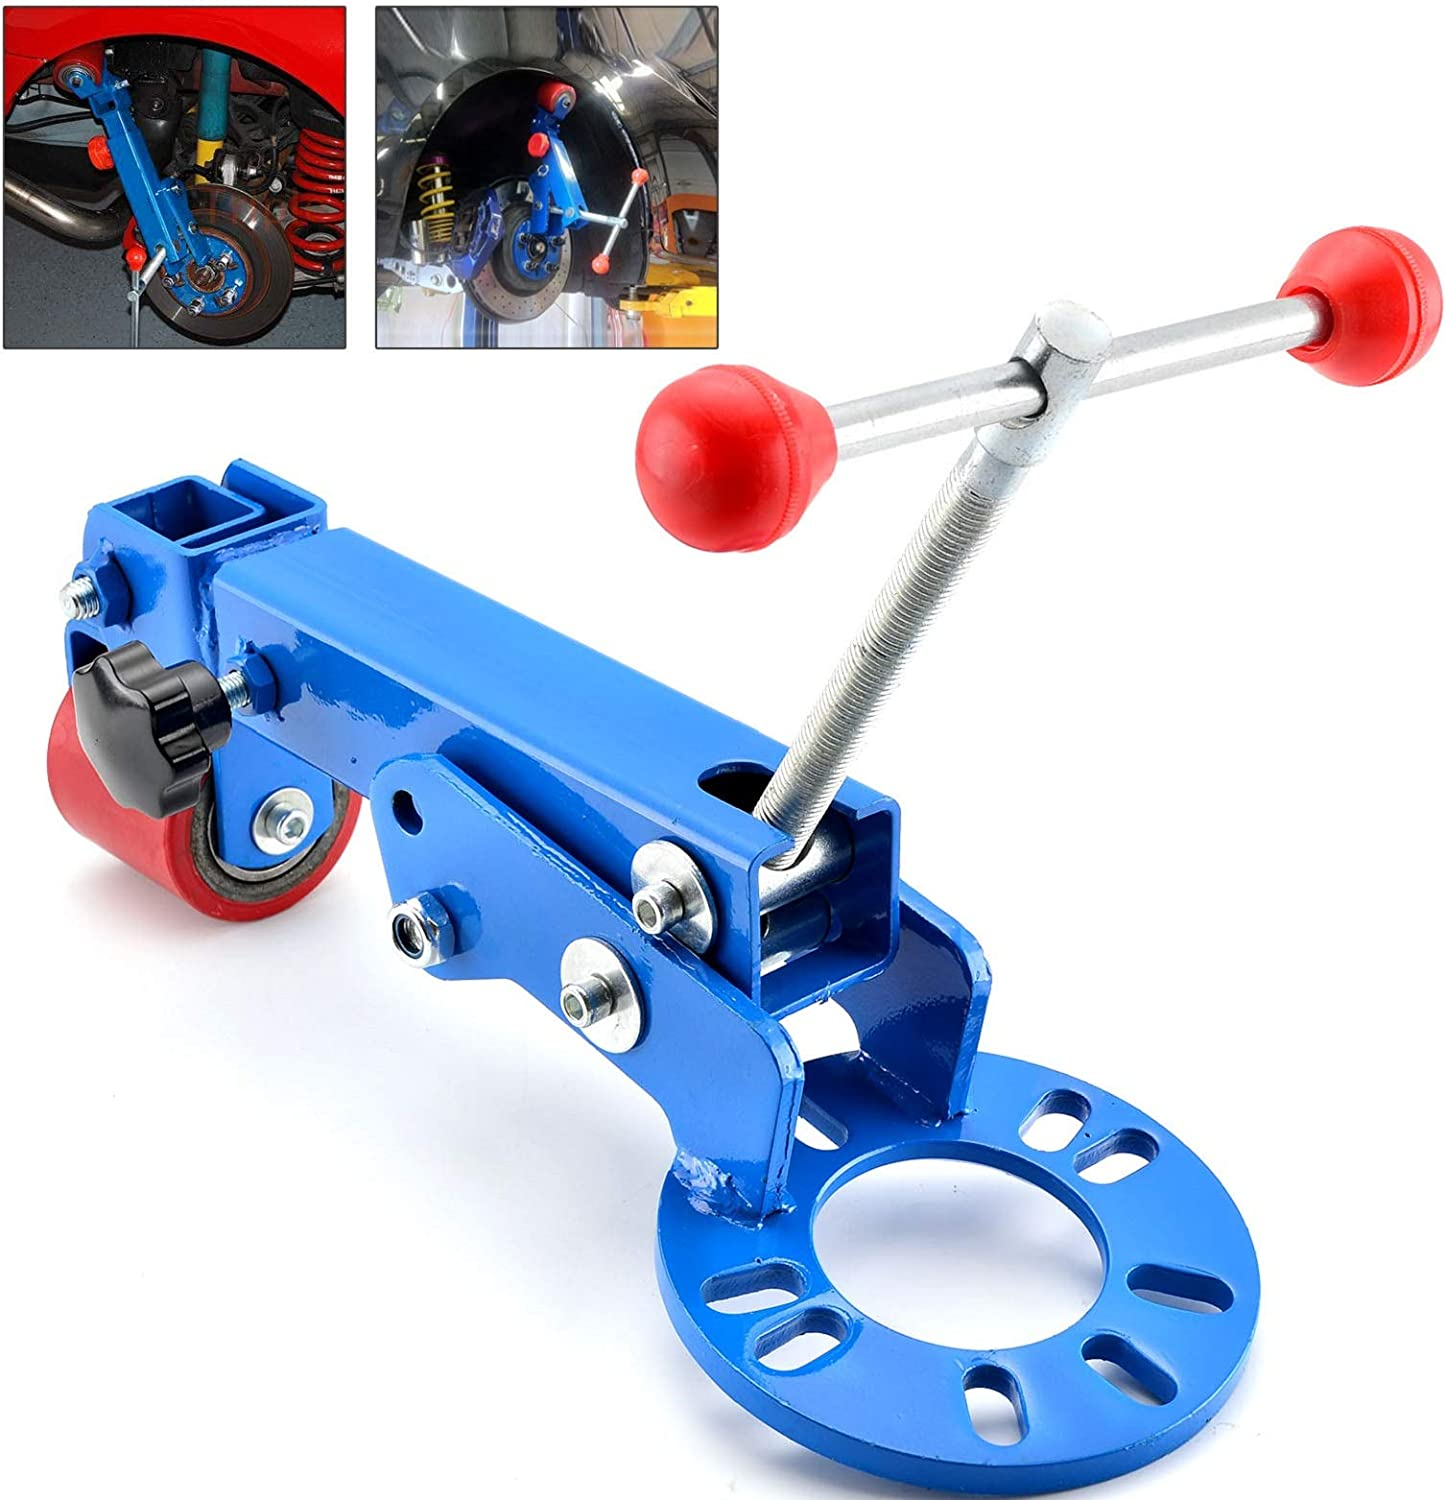 15 Roll Fender Reforming Tool 66 13.5cm Extending Tool Wheel Arch Roller Flaring Former For Heavy Duty Car Accessory Repairing Tool